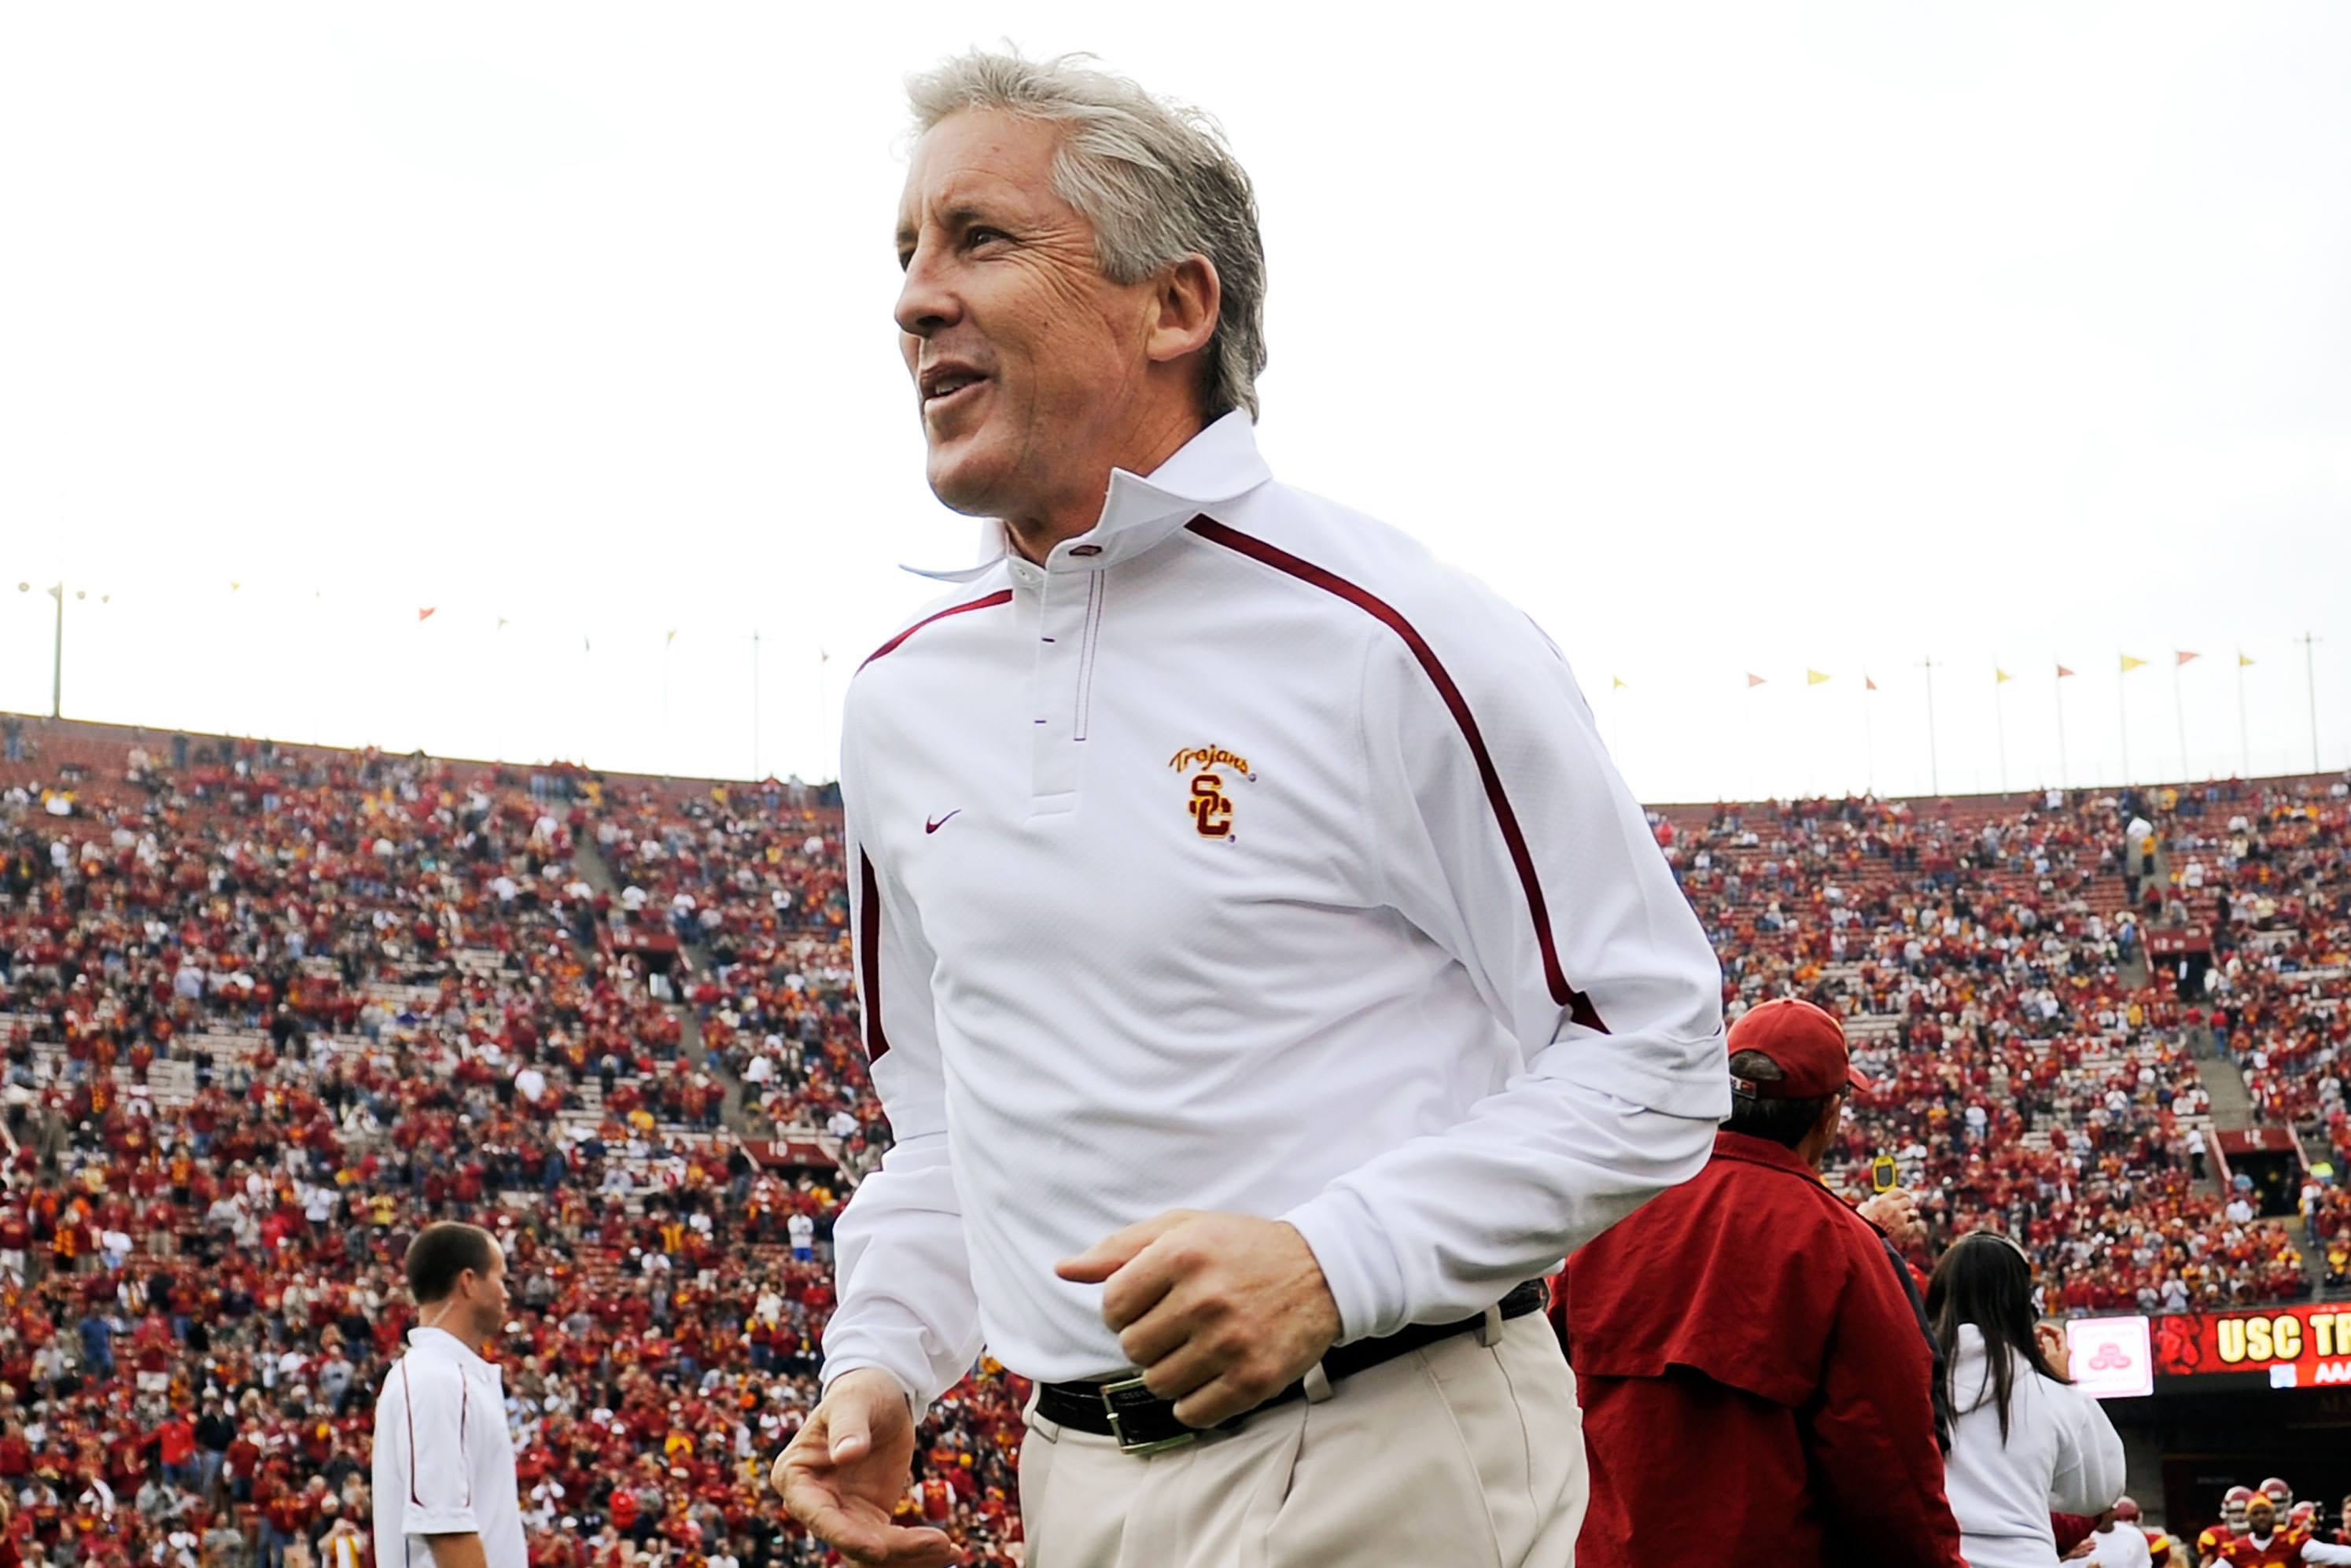 Pete Carroll S Lasting Usc Legacy His Impact Beyond Football Bleacher Report Latest News Videos And Highlights